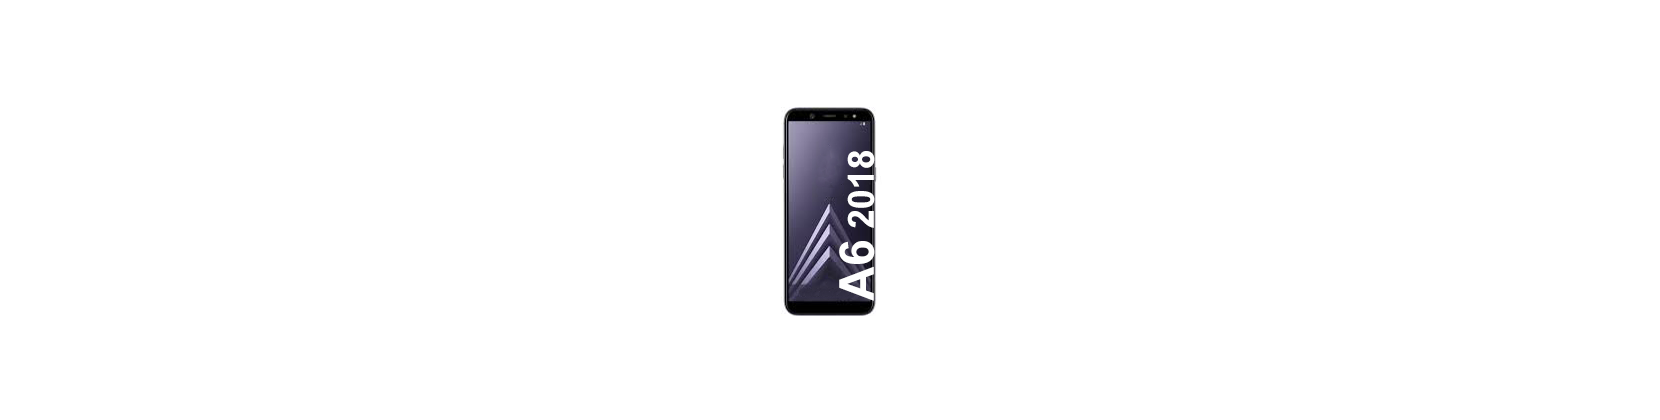 Spare parts for Samsung Galaxy A6 2018